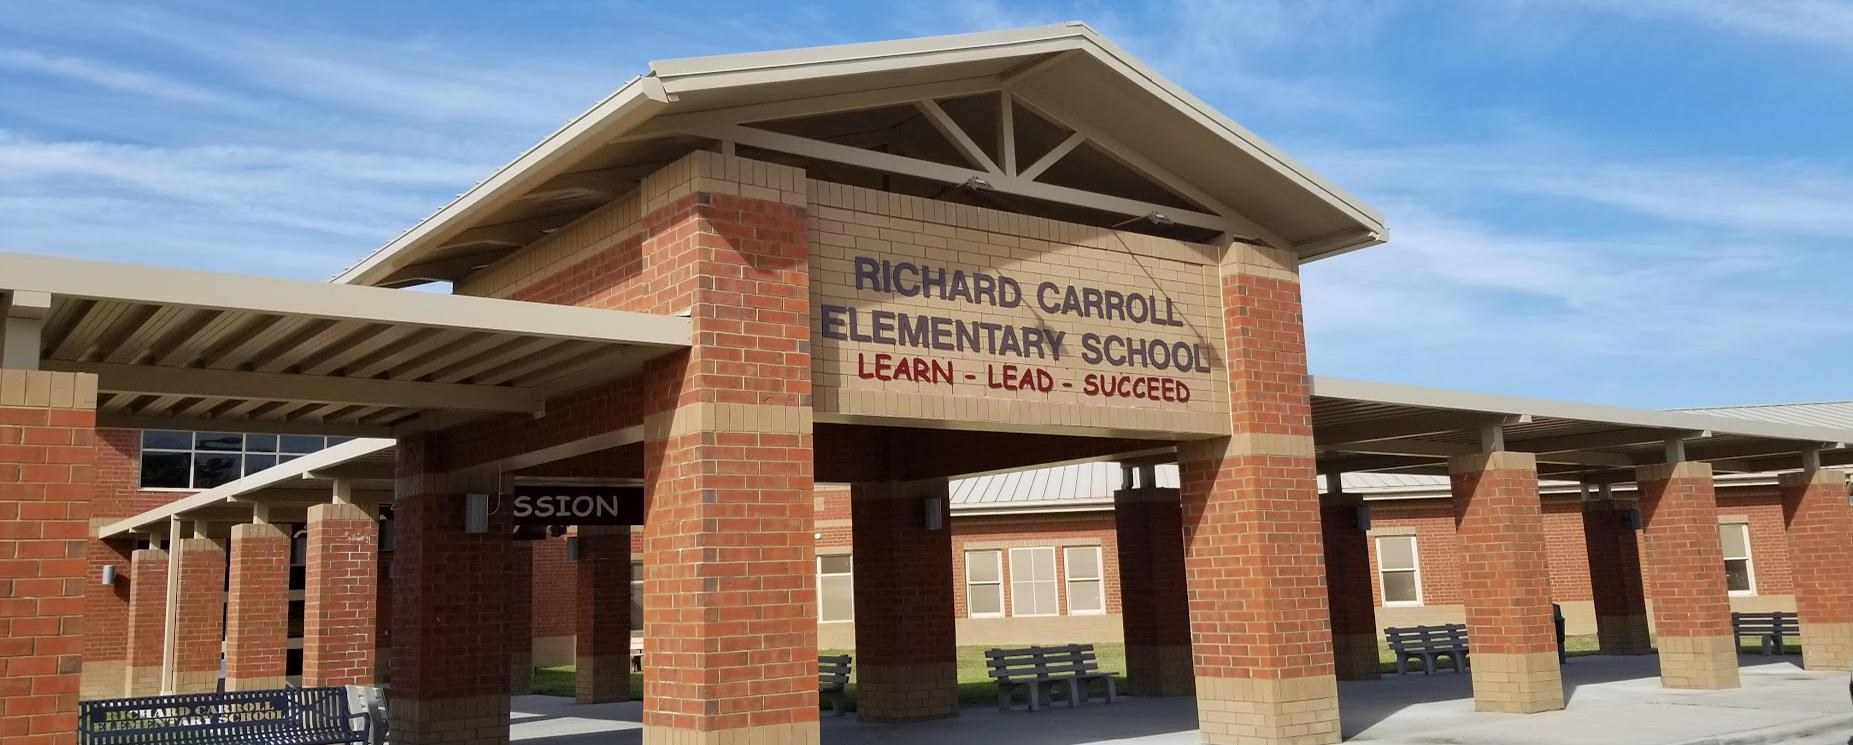 Richard Carroll Elementary School Pic